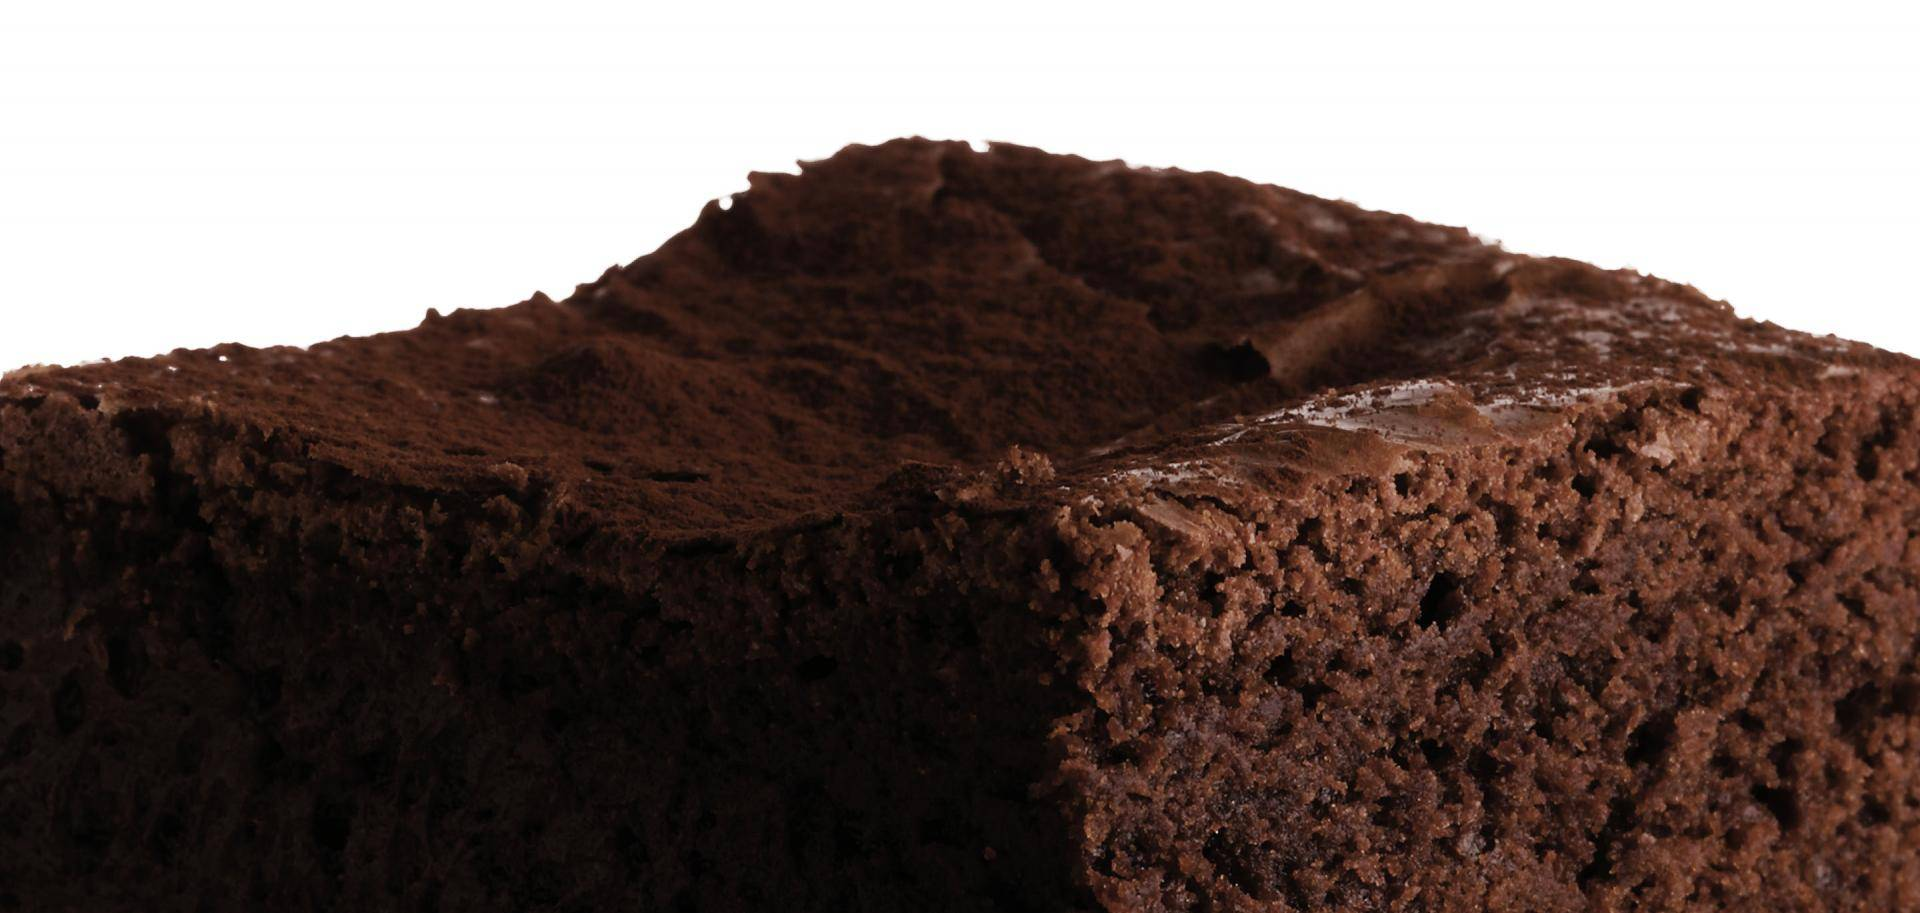 Brownie made with Natural Dark cocoa powder